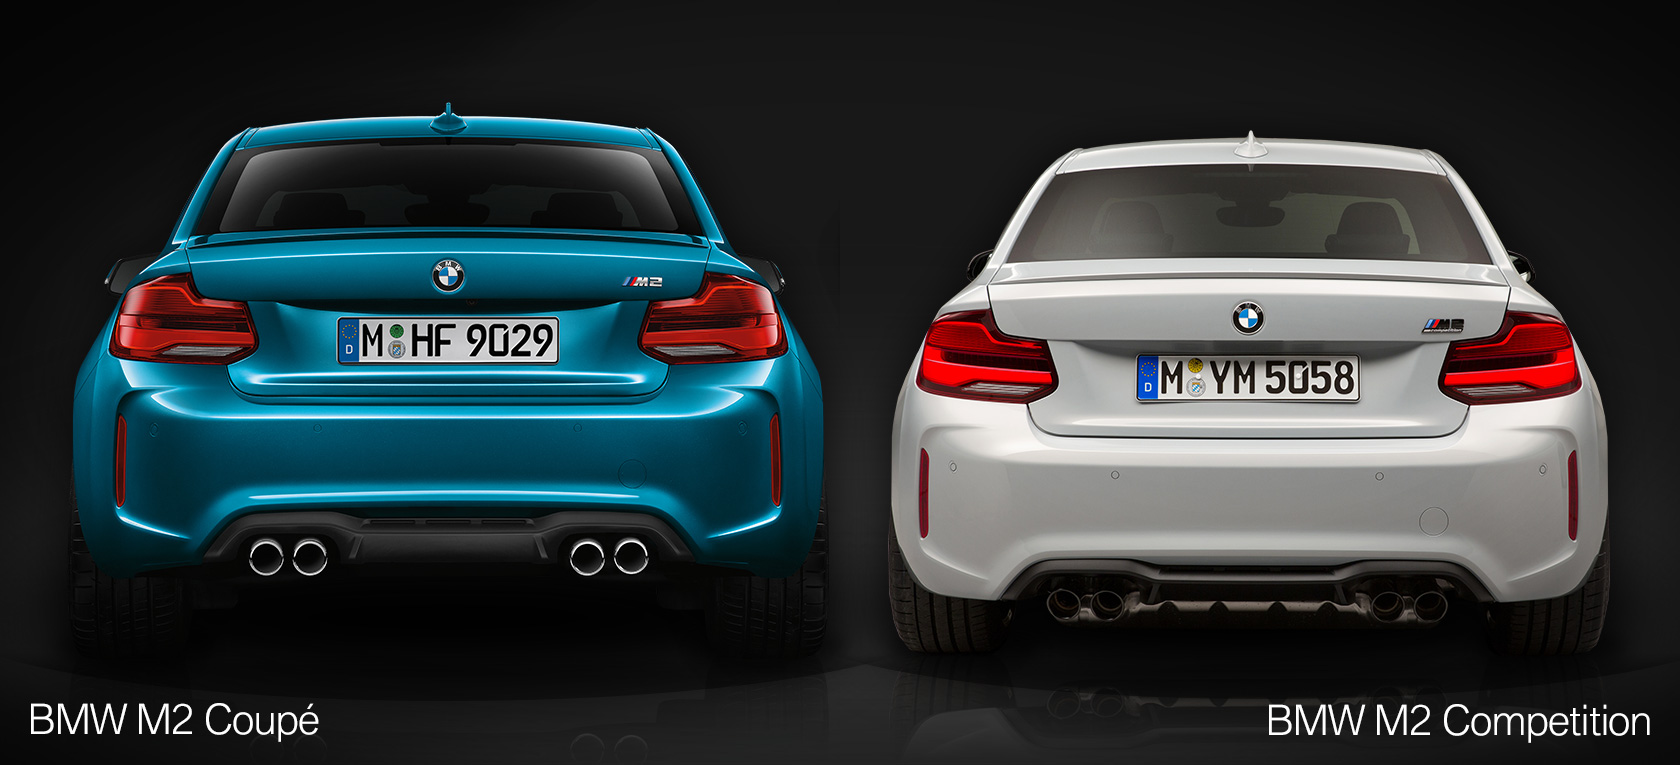 2020 BMW M2 Specs, Redesign And Release Date >> Bmw M2 Vs Bmw M2 Competition